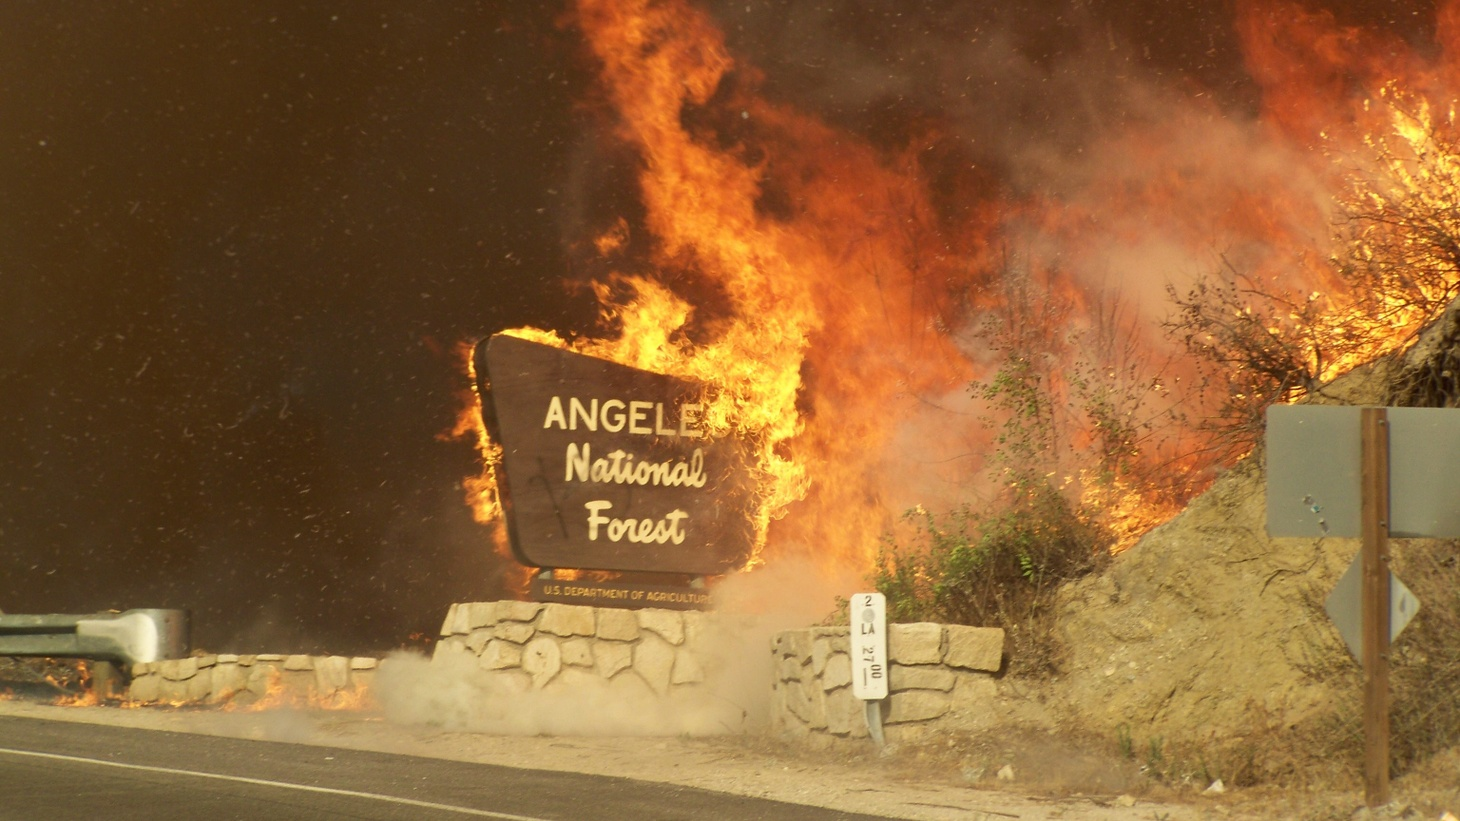 The Station Fire of August 2009 burns Angeles National Forest.